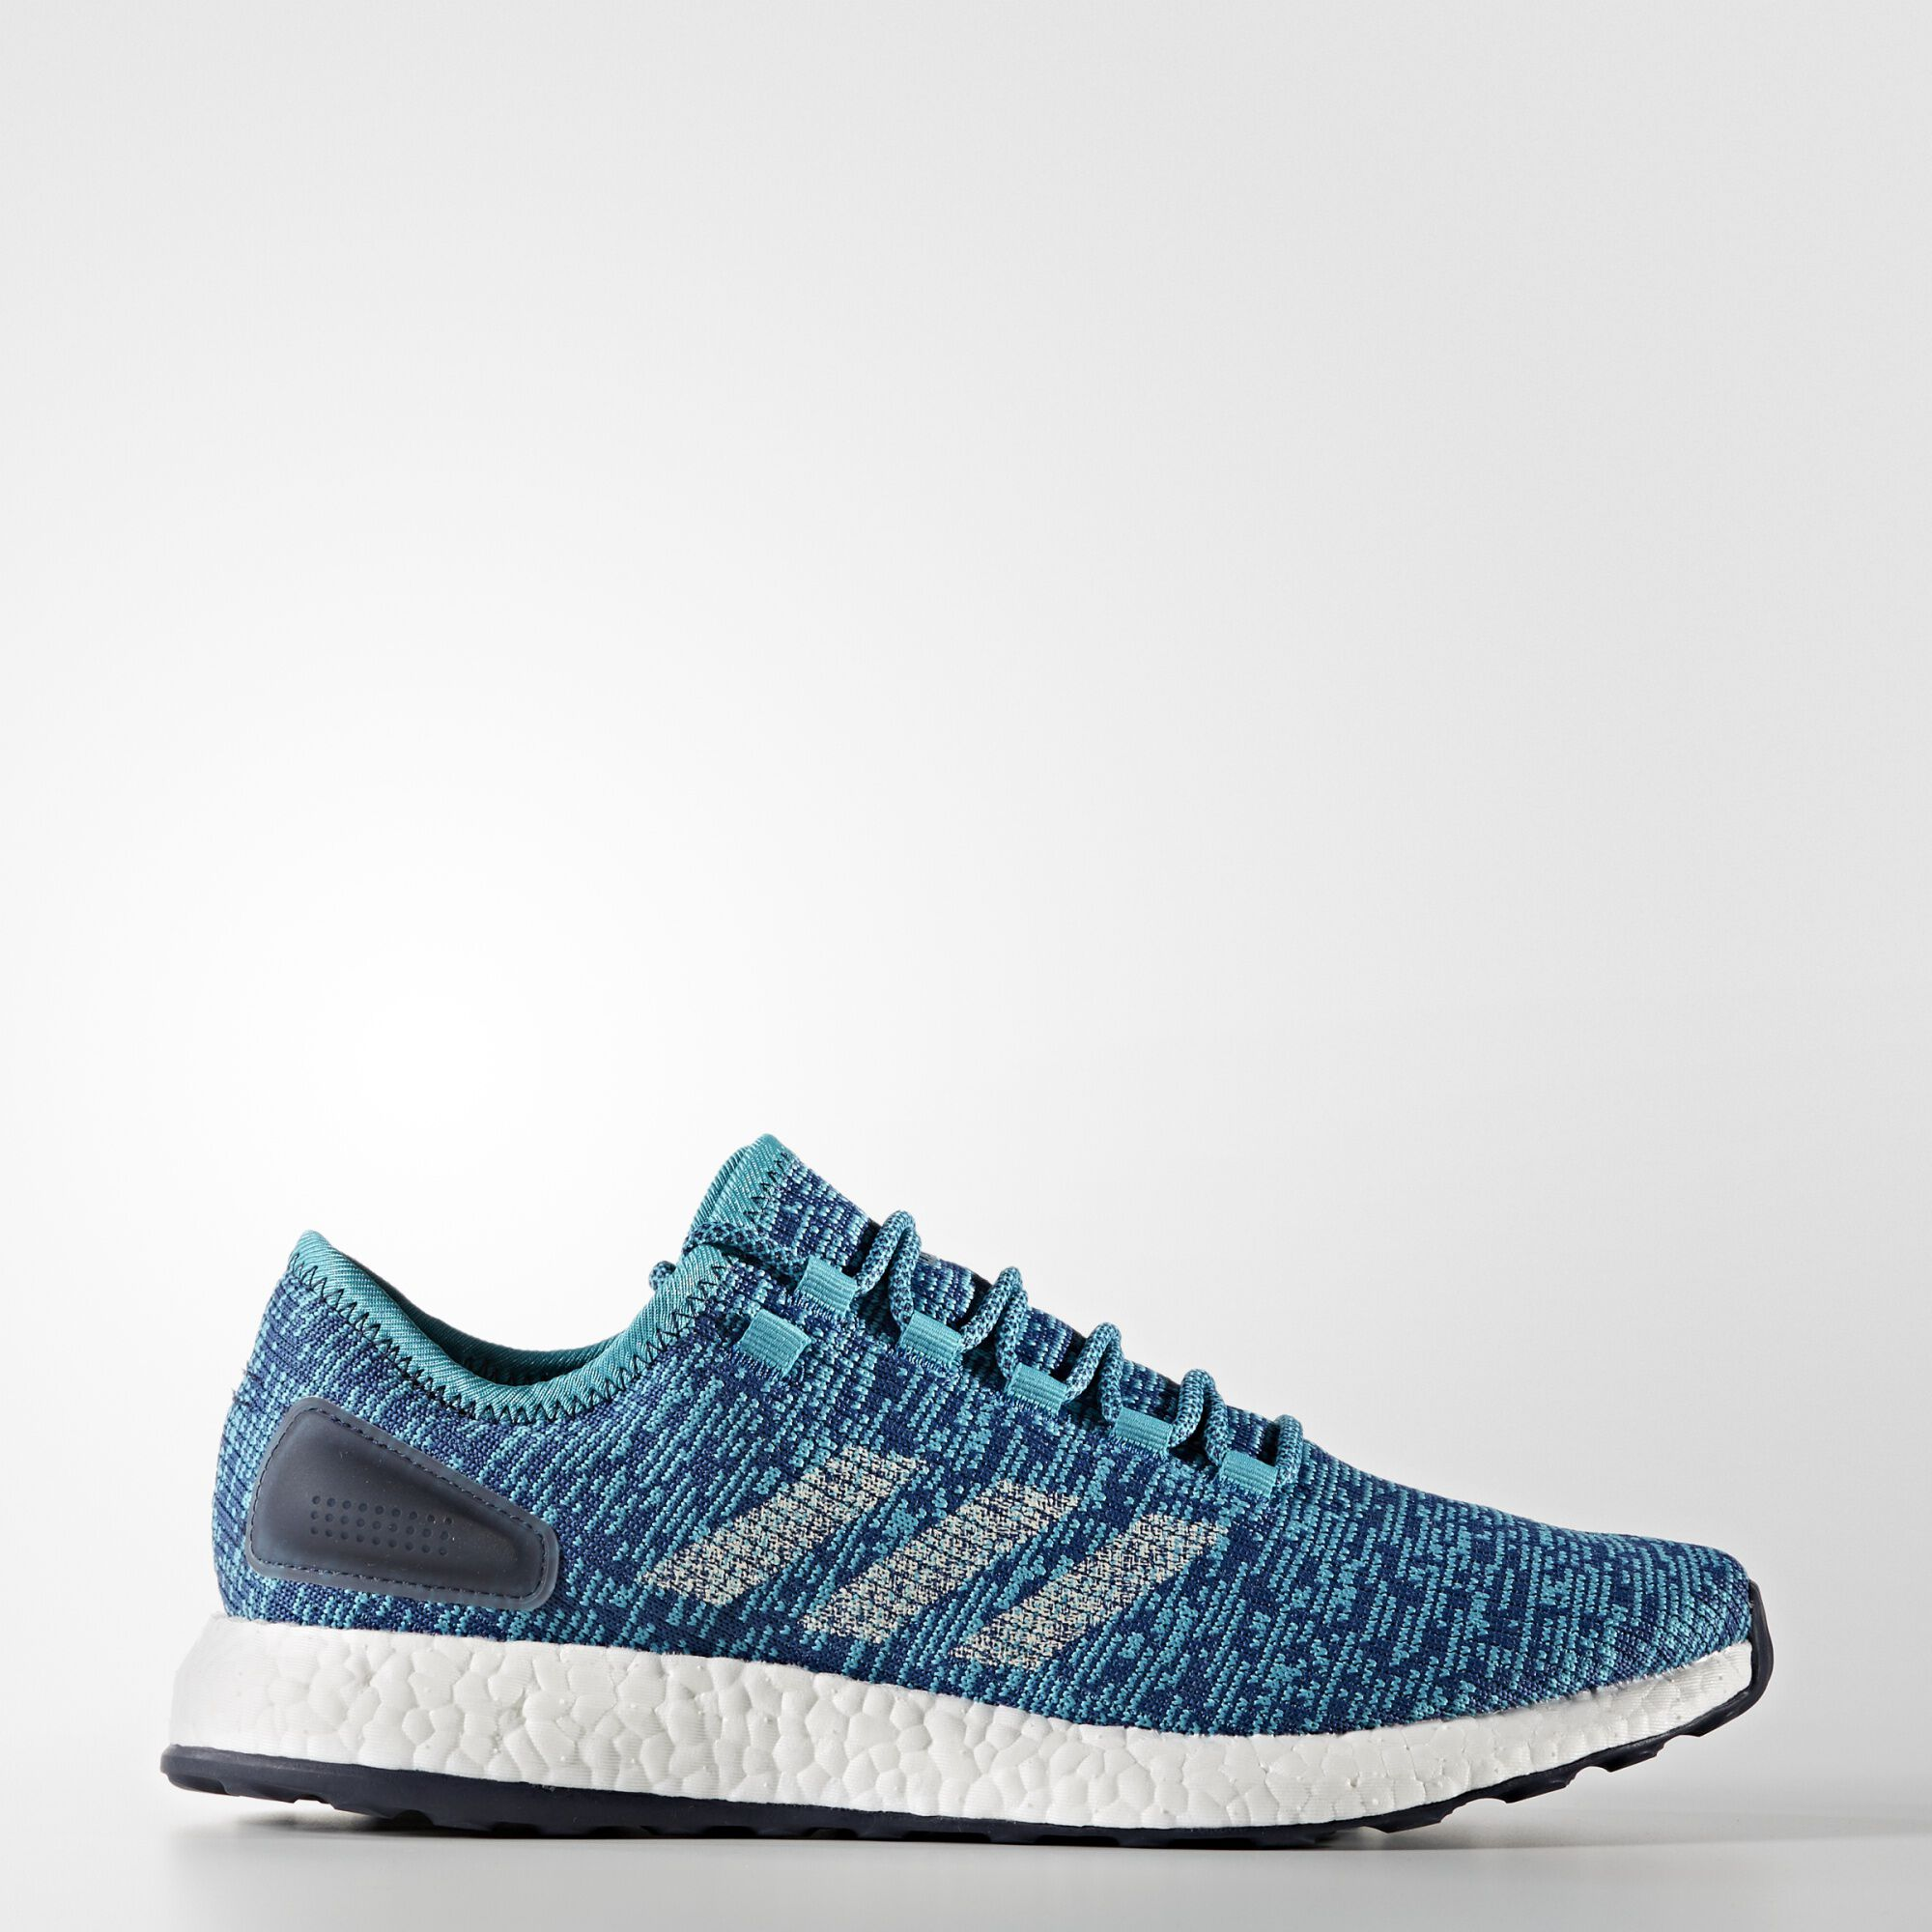 adidas - Pure Boost Clima Shoes Energy Blue / Core Blue BA9056